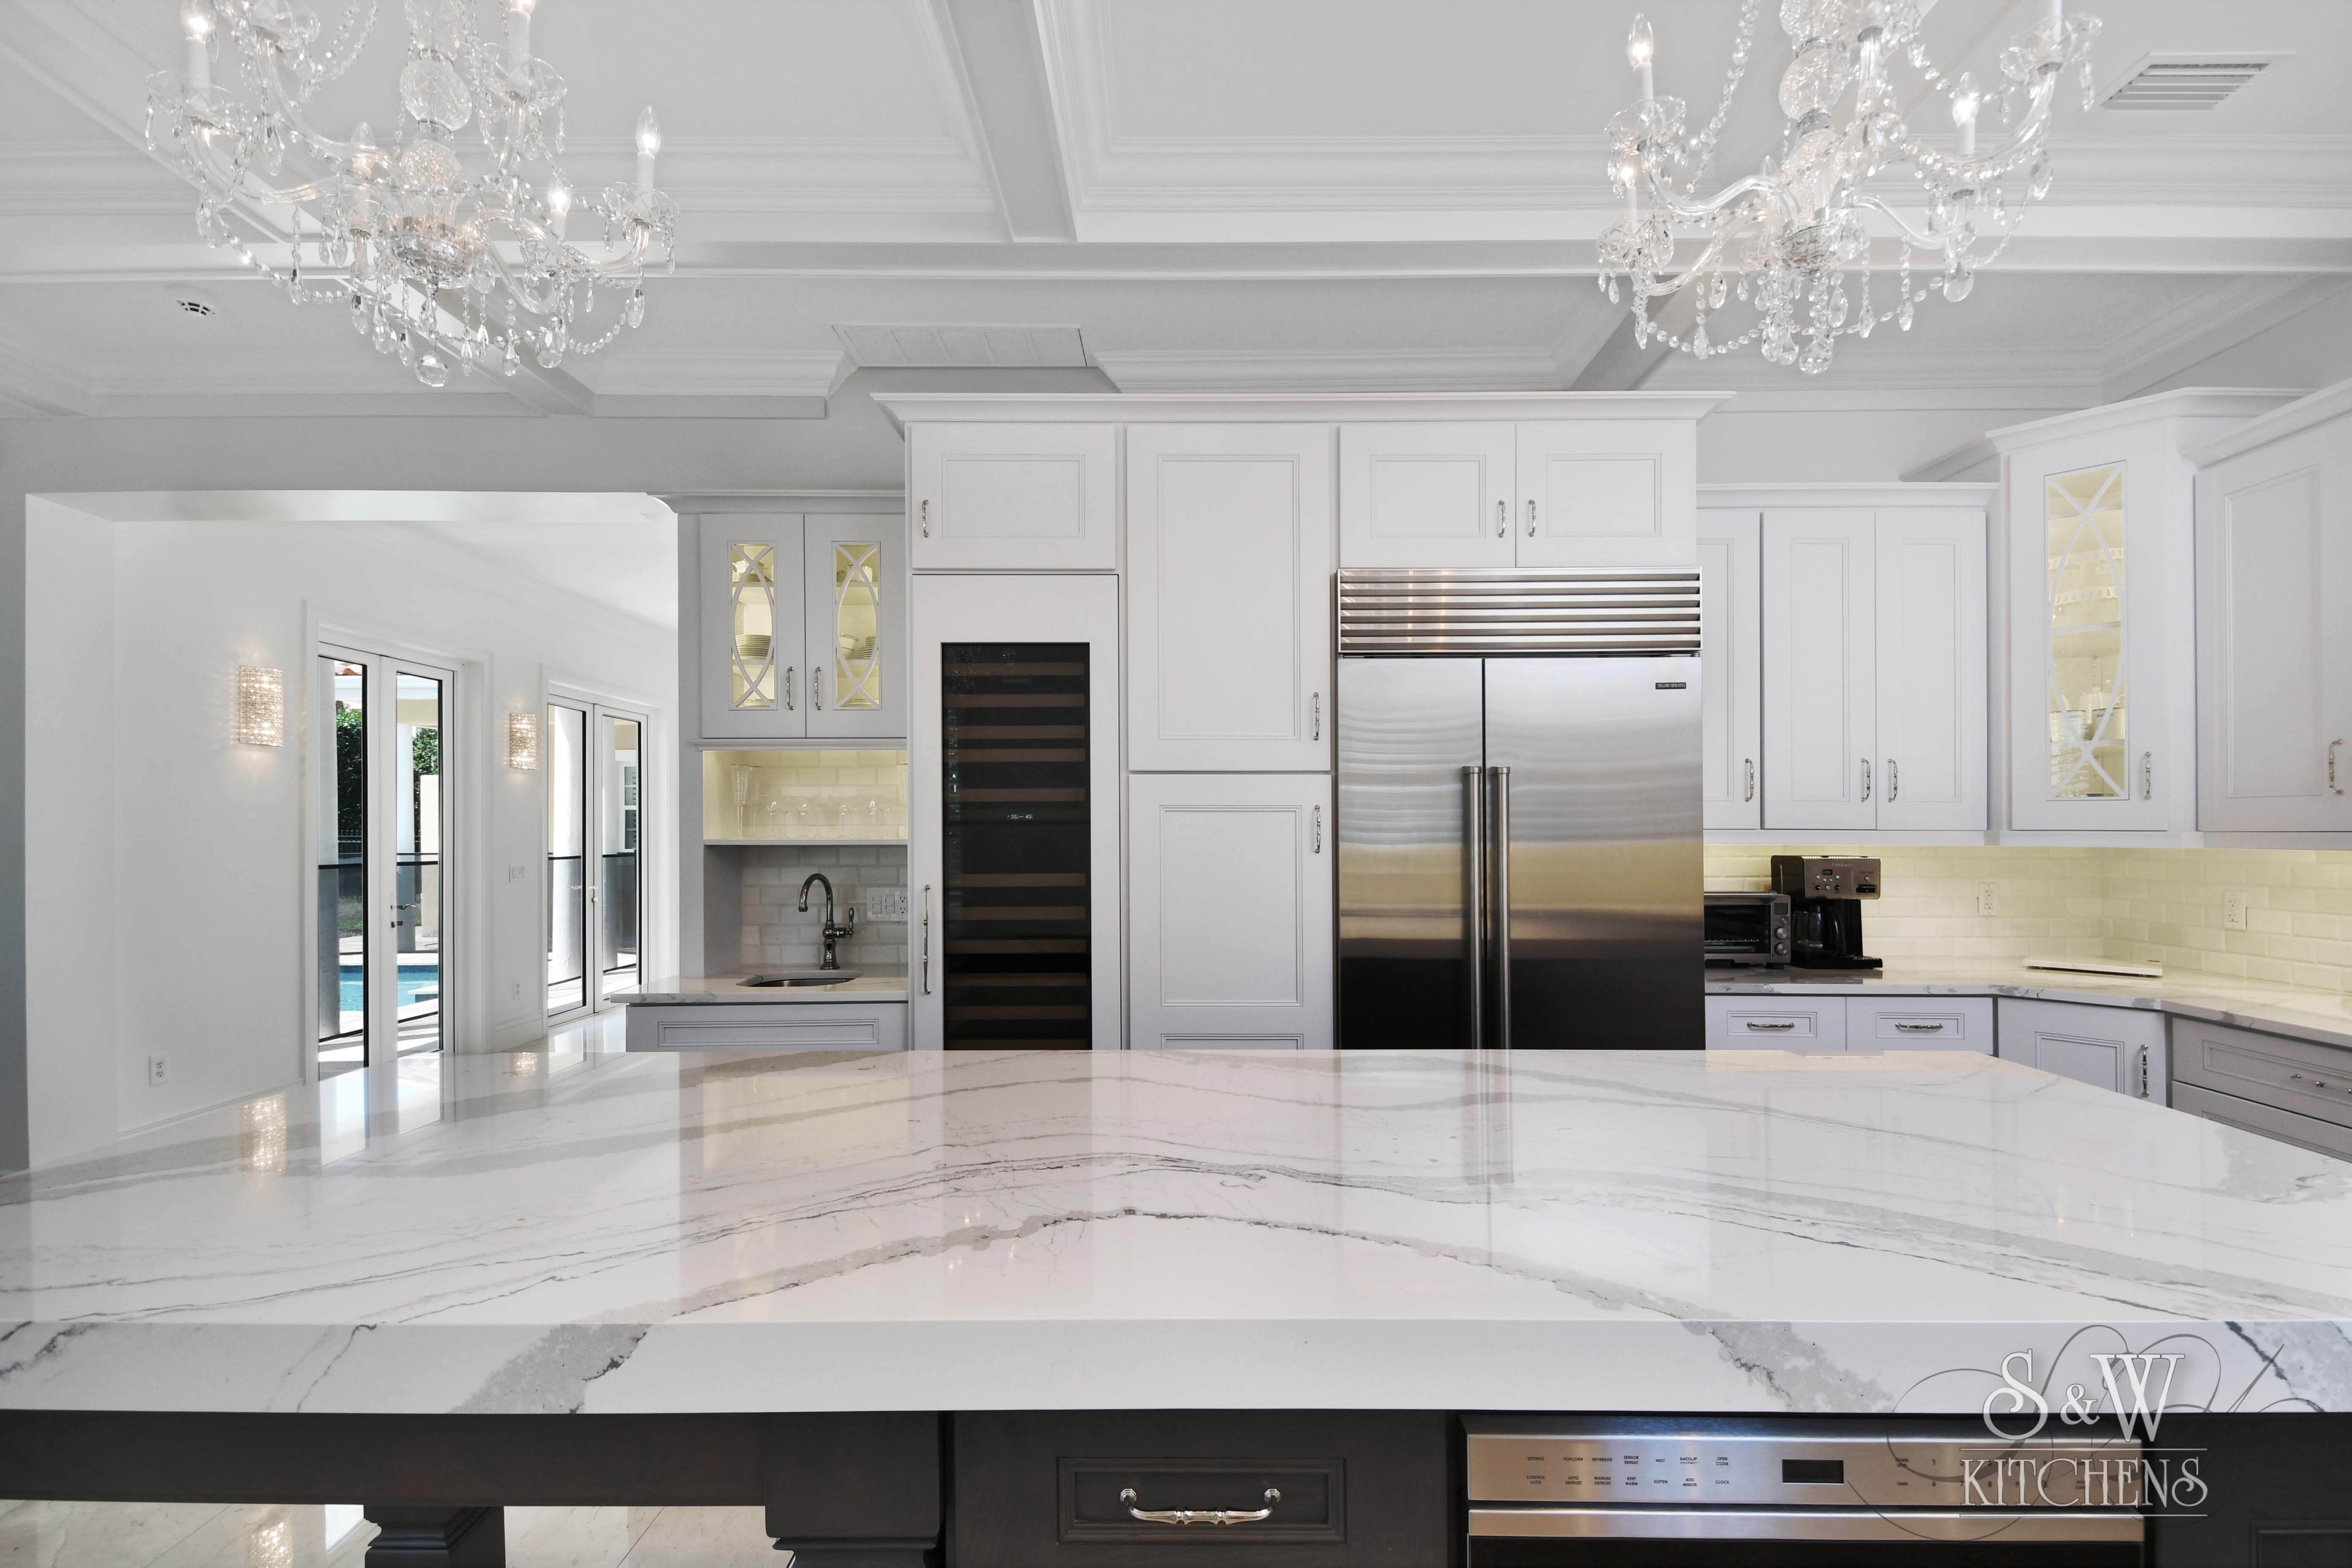 glickman_kitchen_008.jpg